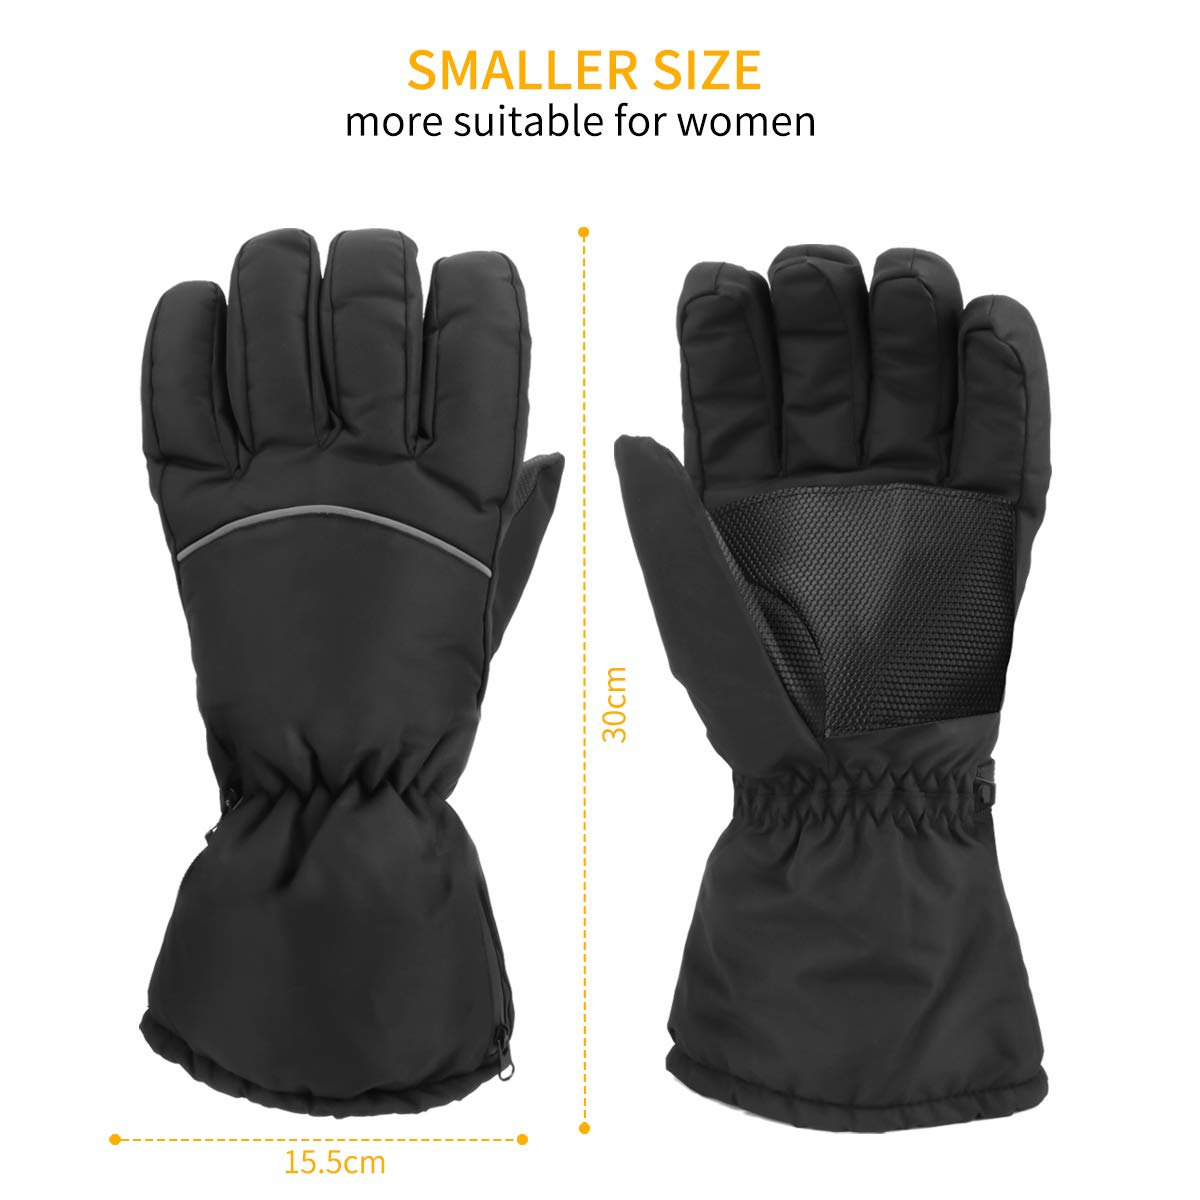 E-More Heated Gloves for Women Winter Thermal Heating Gloves Hand Warmers Battery Powered Windproof Gloves for Outdoor Sports Motorcycle Cycling Riding Skiing Skating Hiking Walking